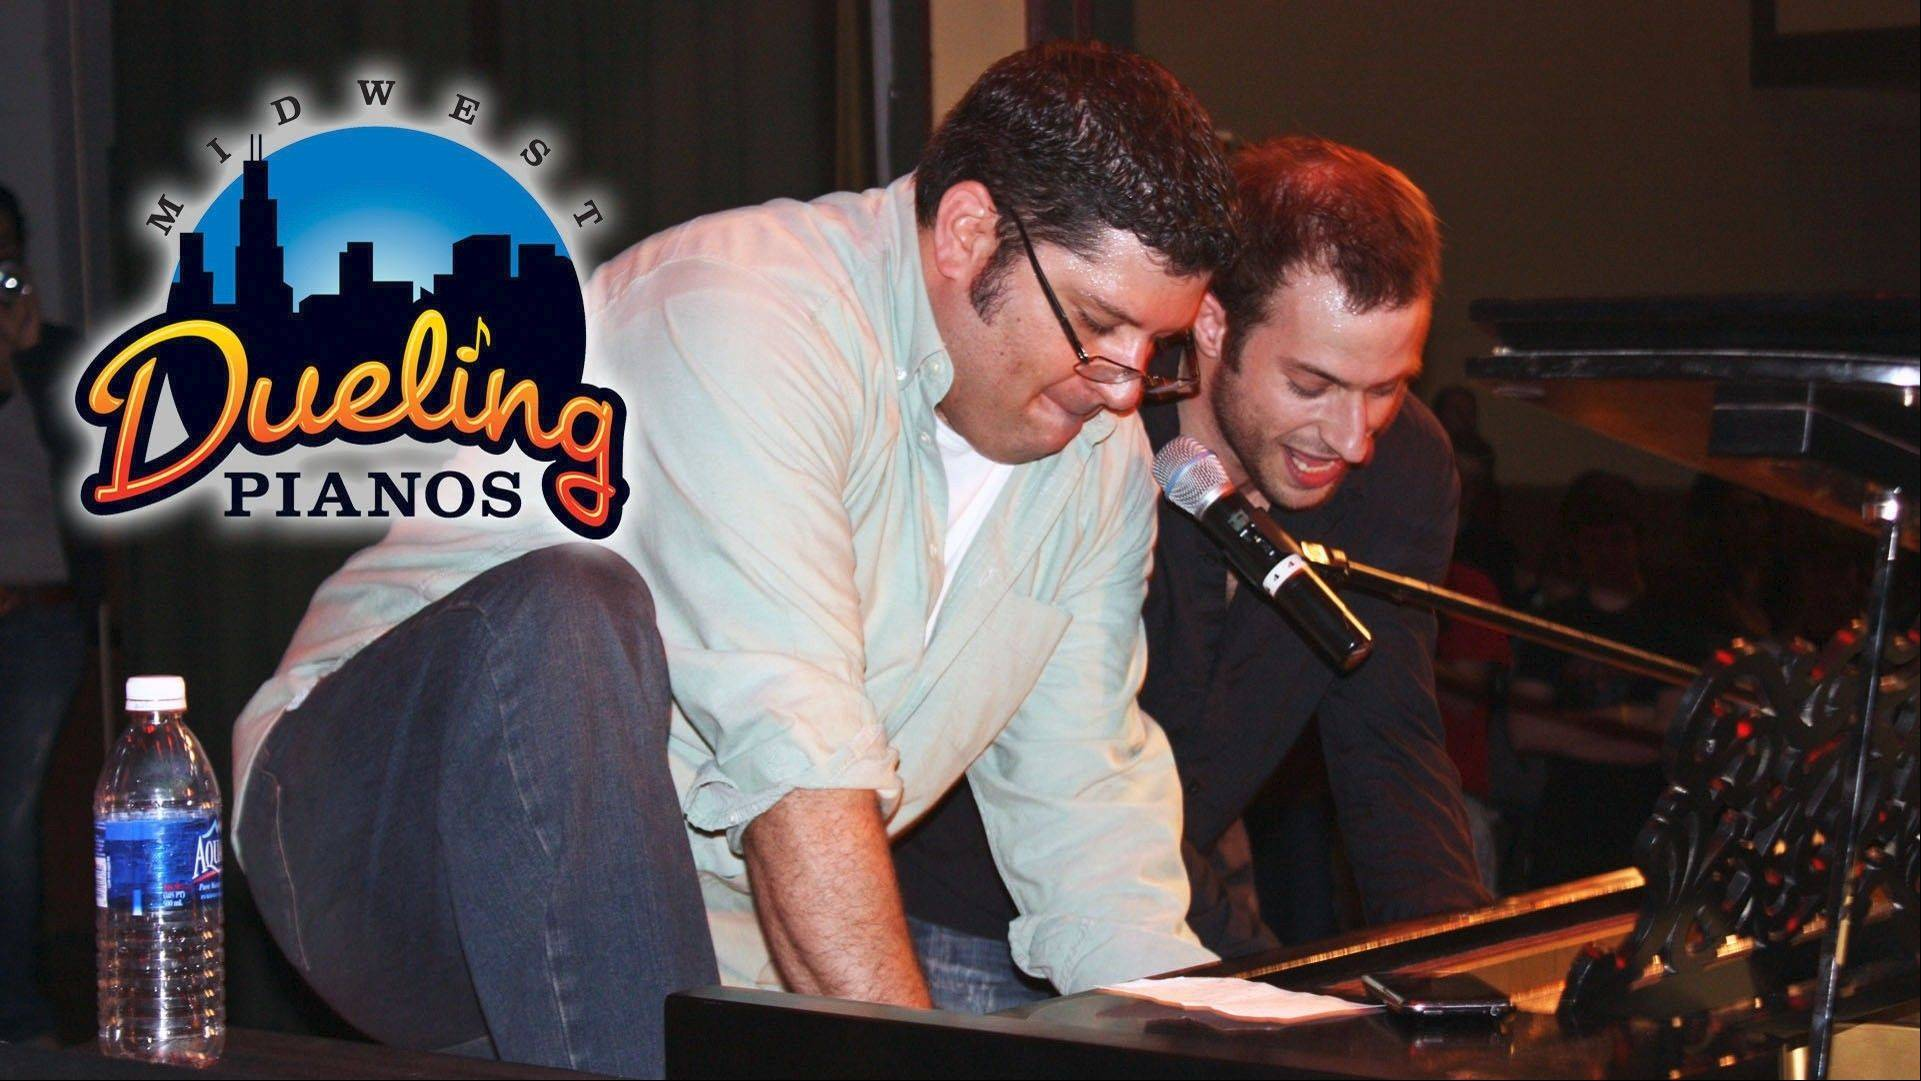 The Midwest Dueling Pianos will perform a free concert in Hoffman Estates Thursday, June 27.